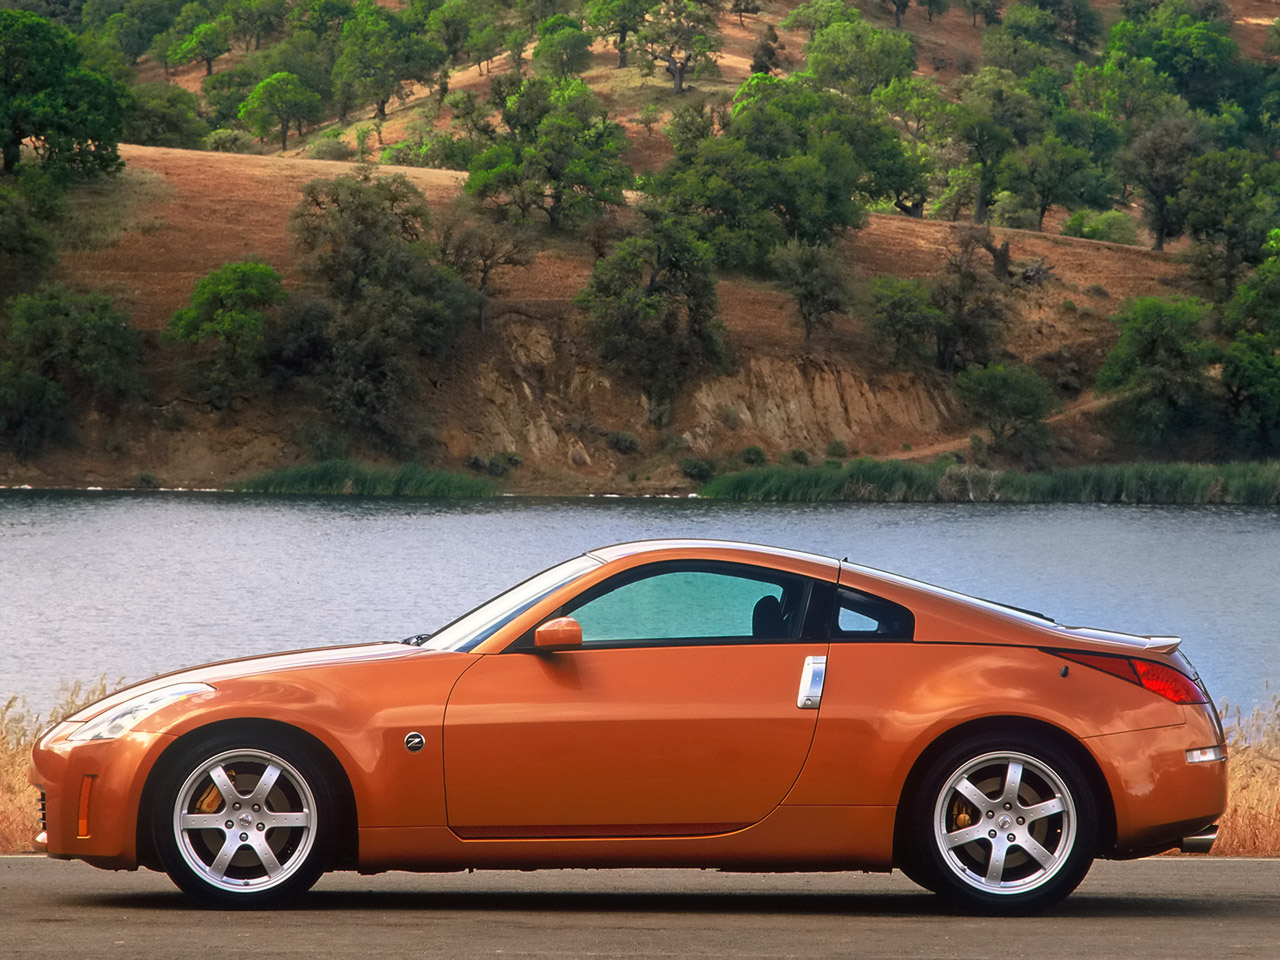 Nissan 350z sunset